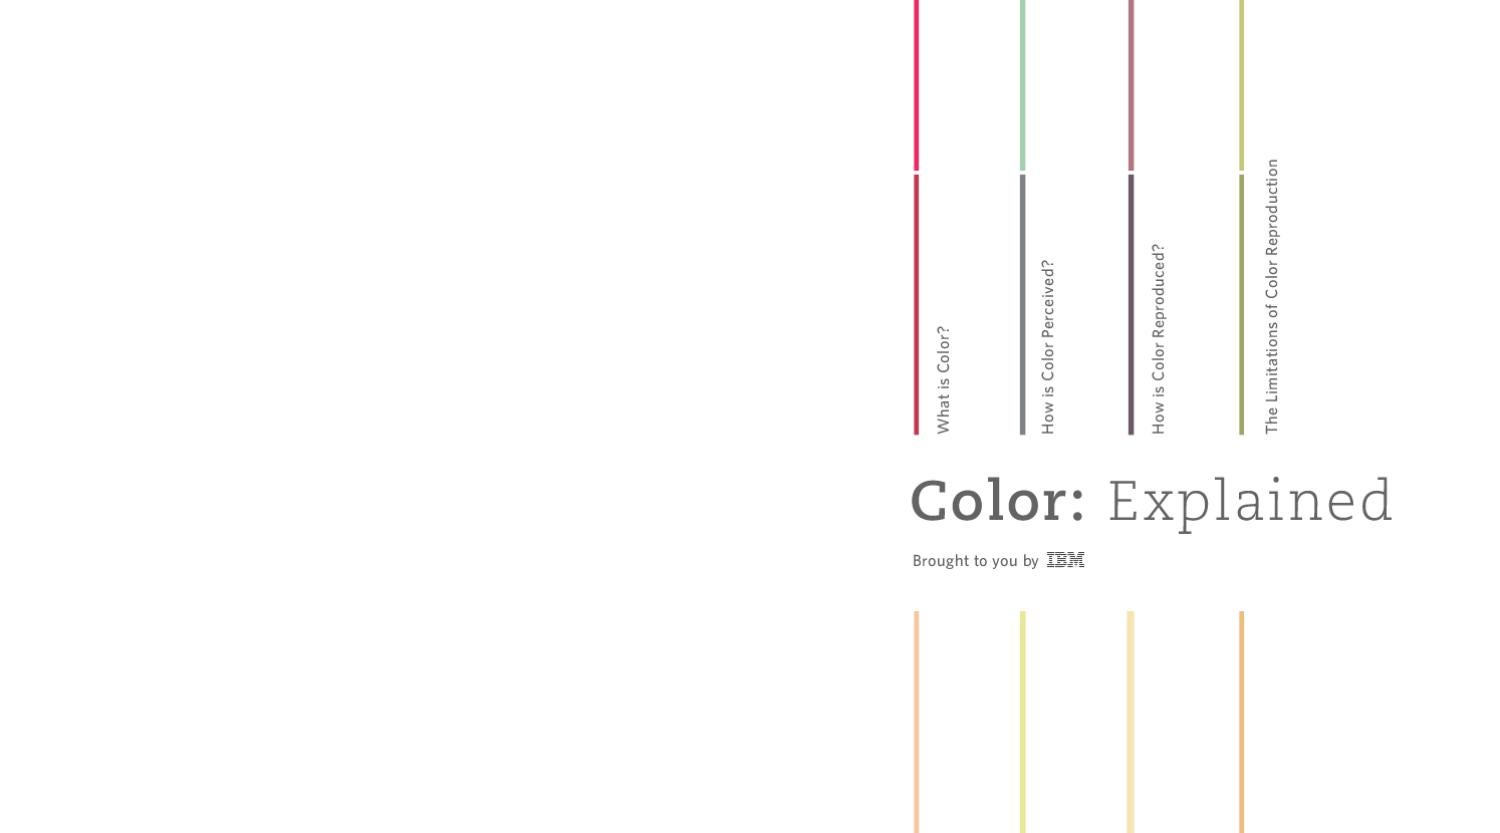 Color: Explained